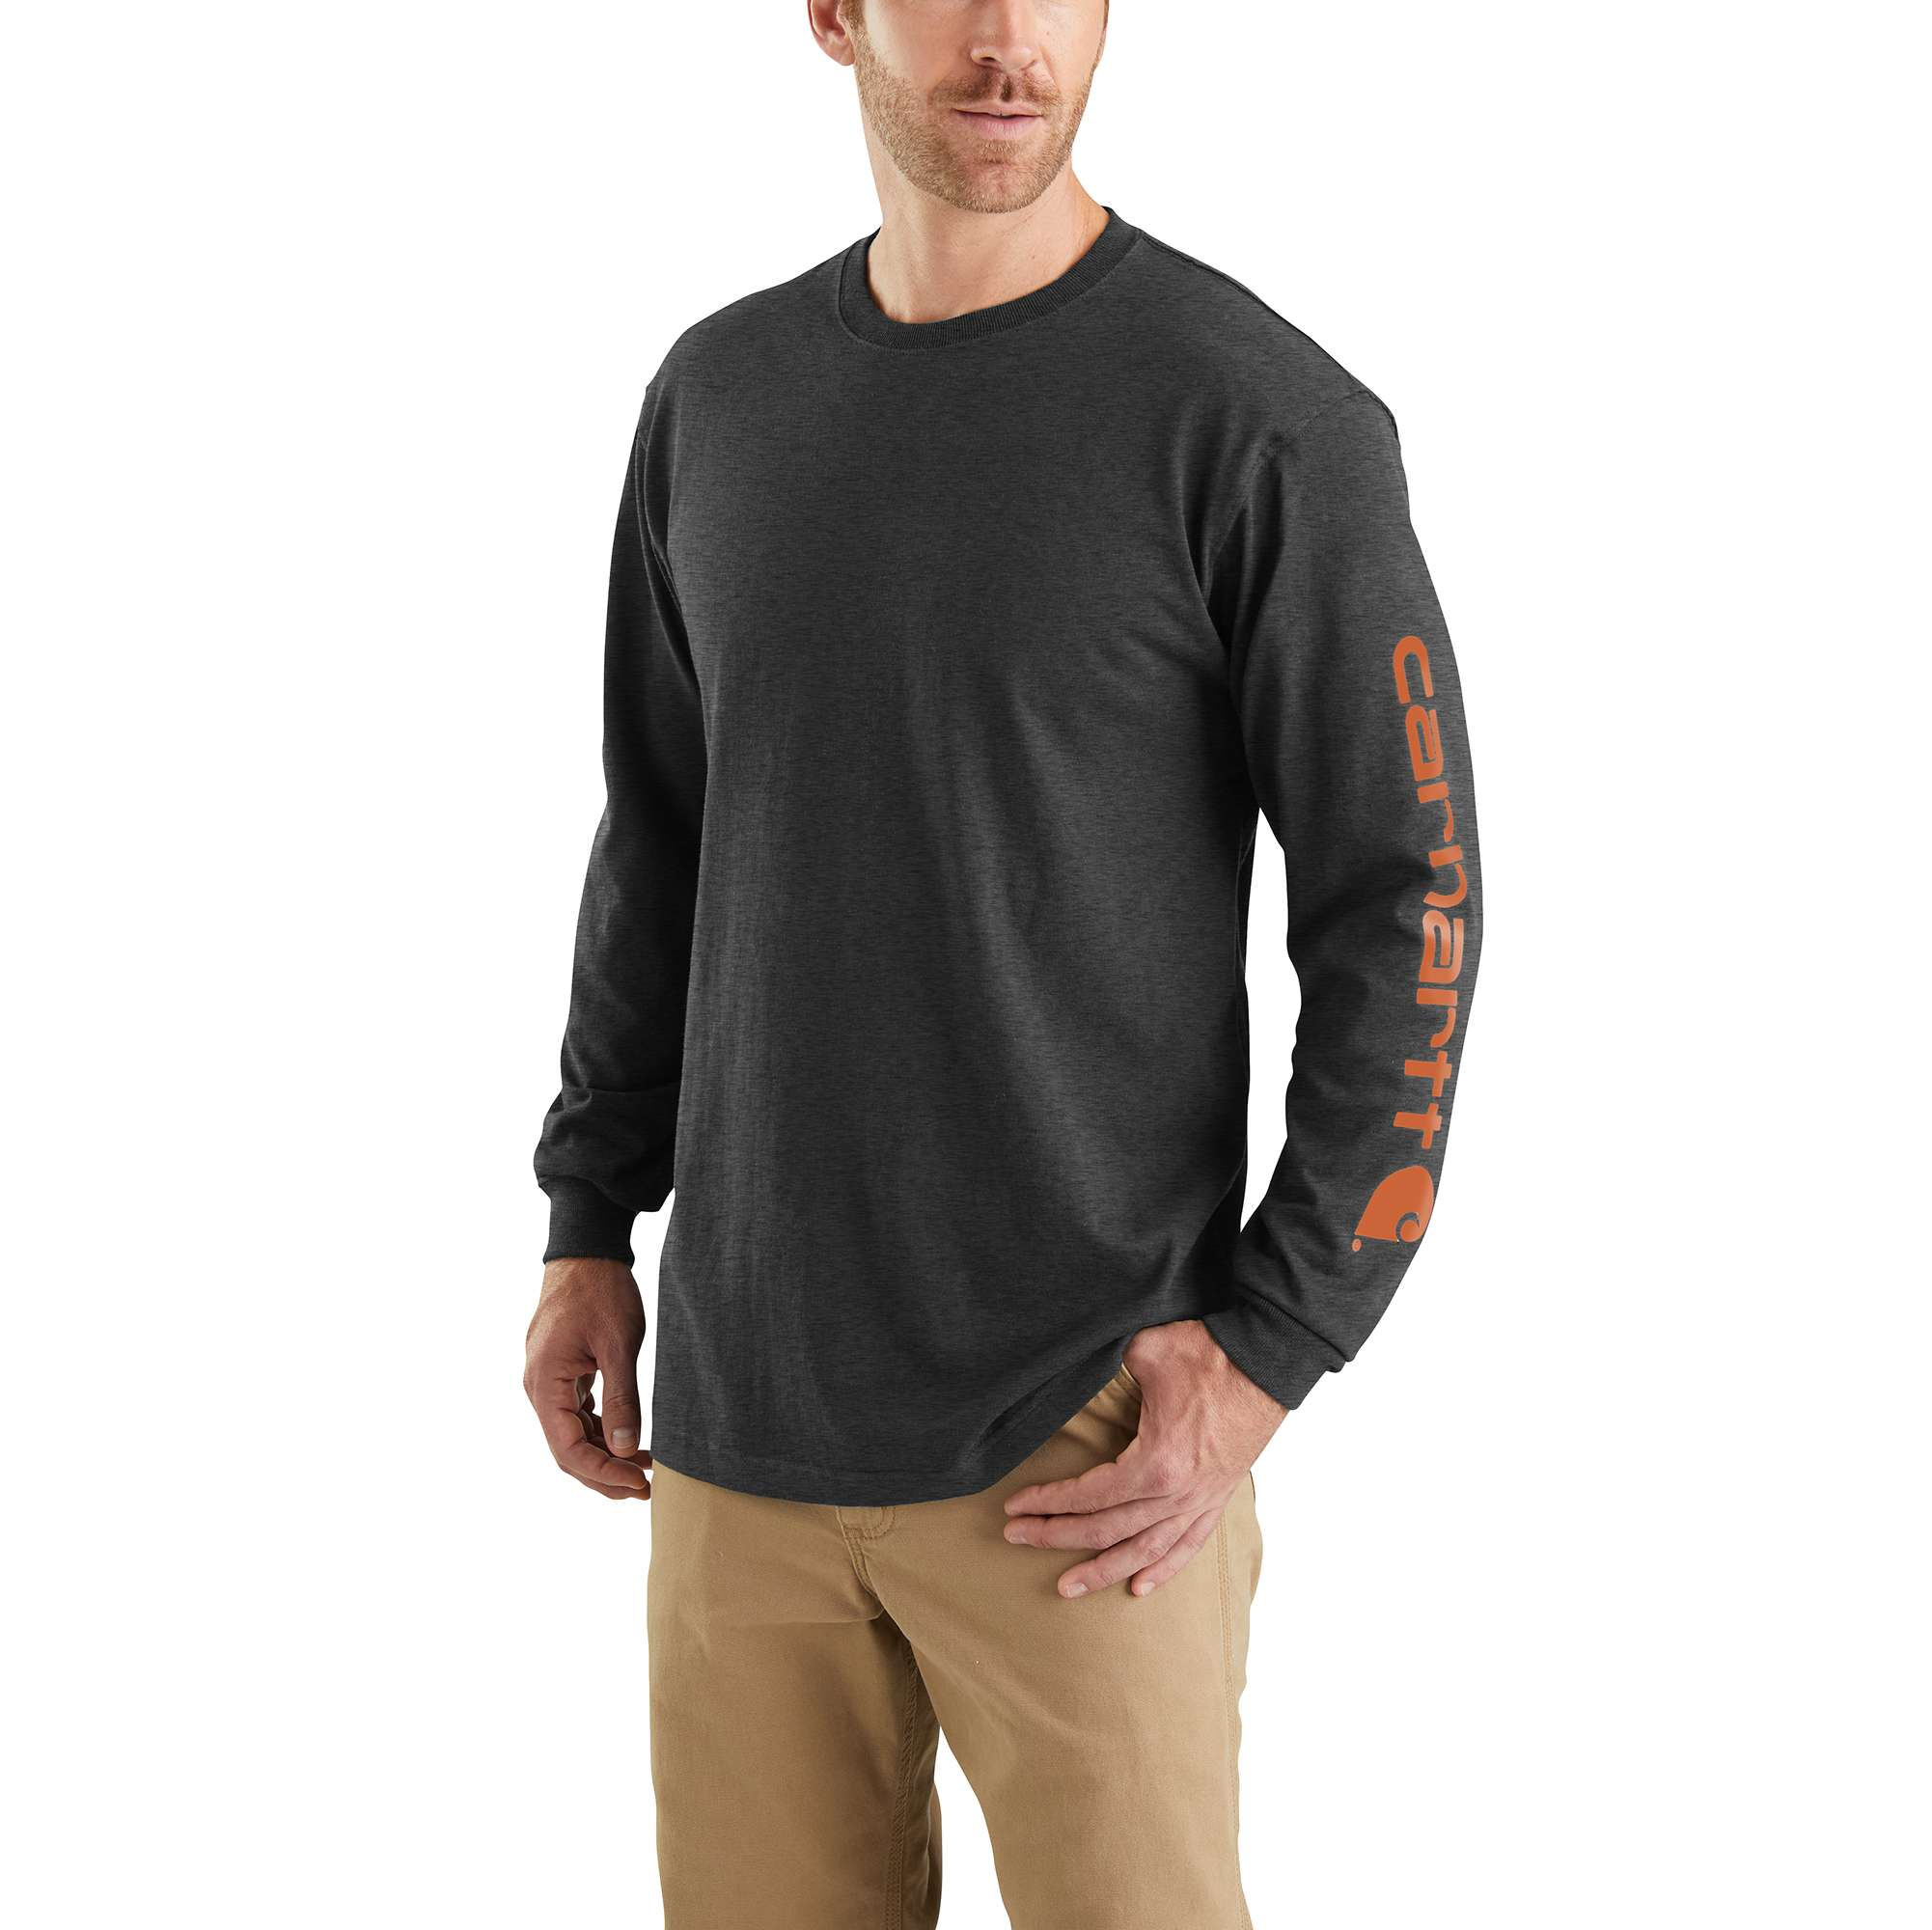 Men's Workwear Long-sleeve Graphic Logo T-shirt, Gray, swatch